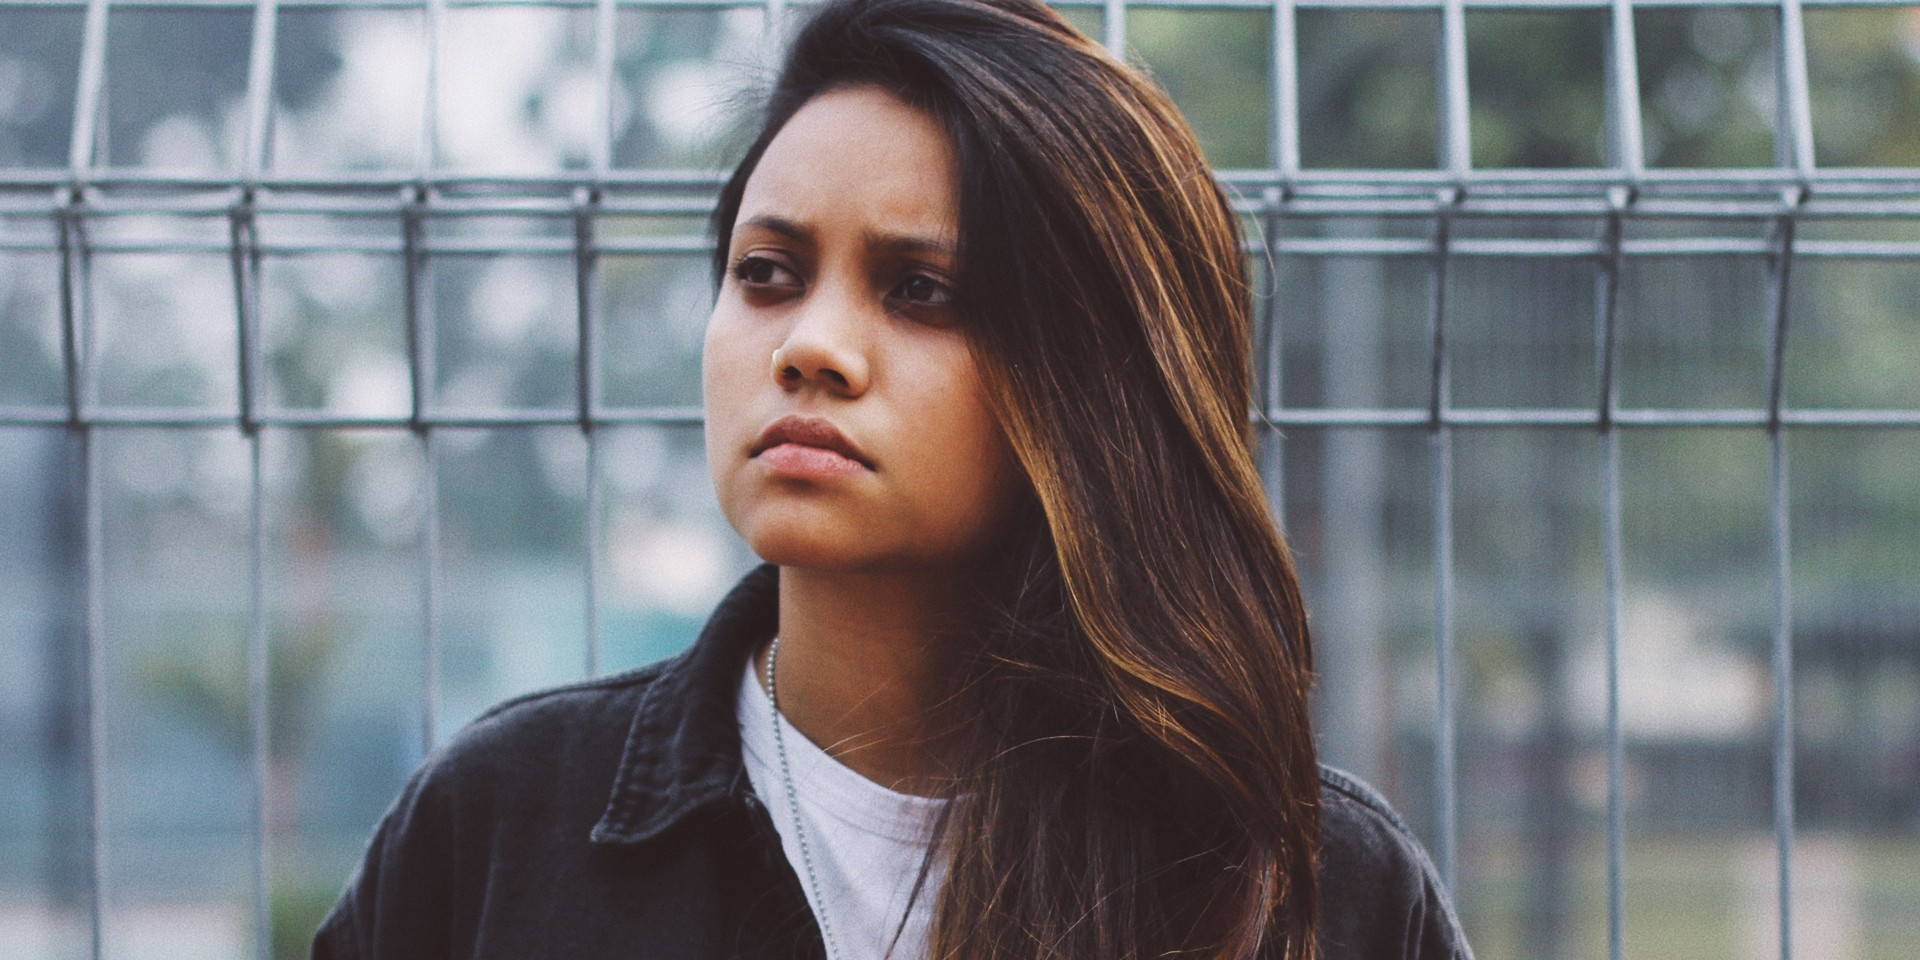 Introducing: Malaysia's singer-songwriter Cassandra Mary on growing up with music